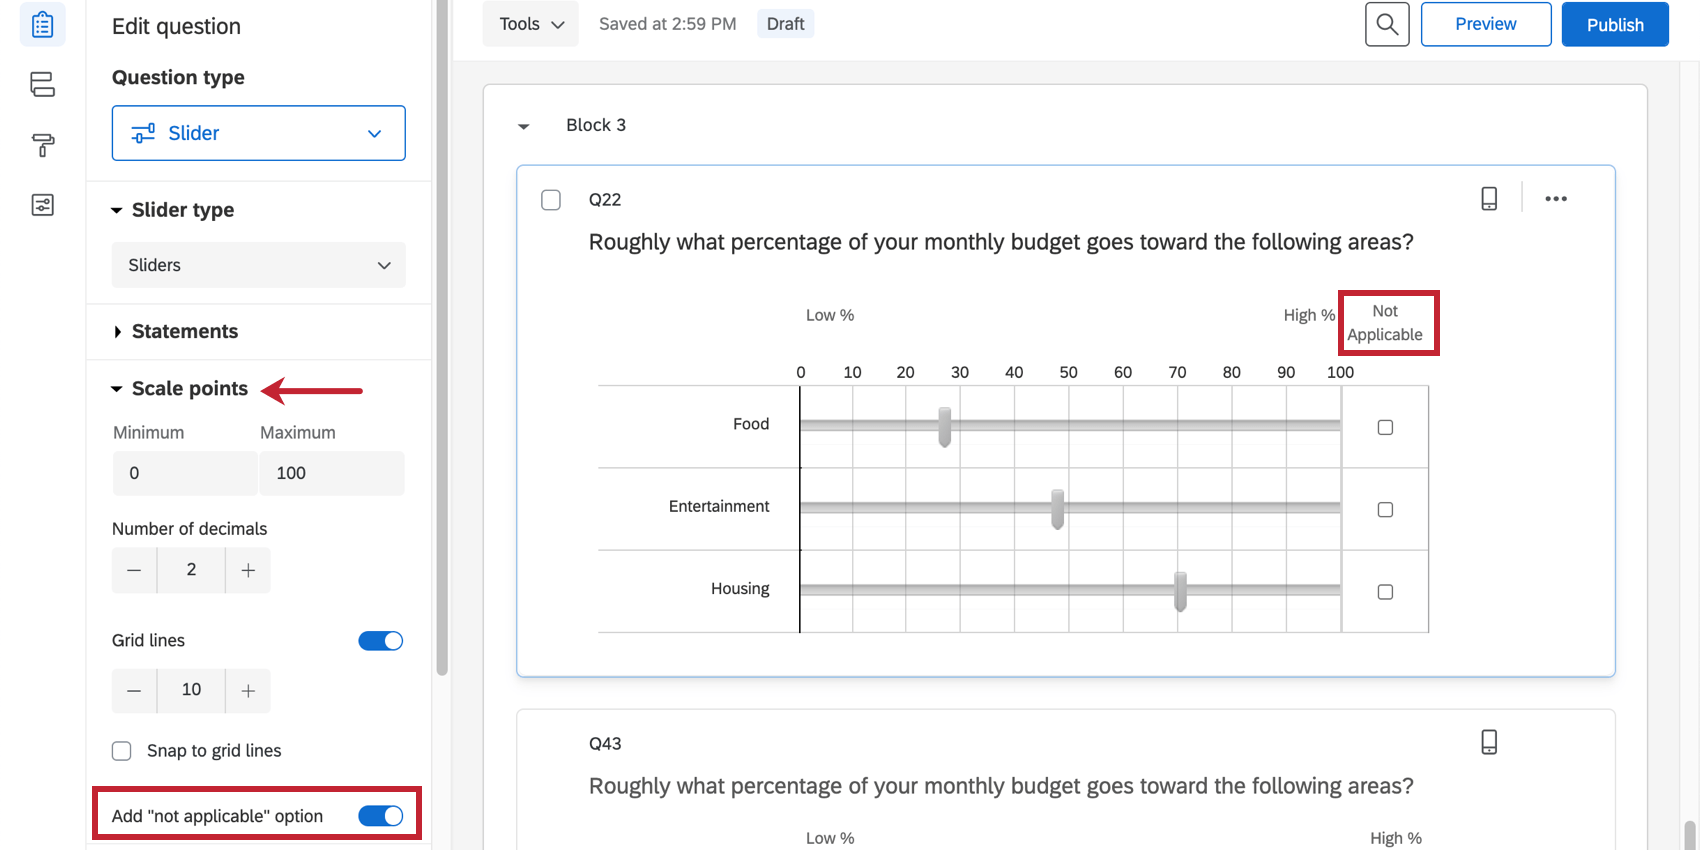 not applicable is selected, so a column show sup next to the sliders with a checkbox